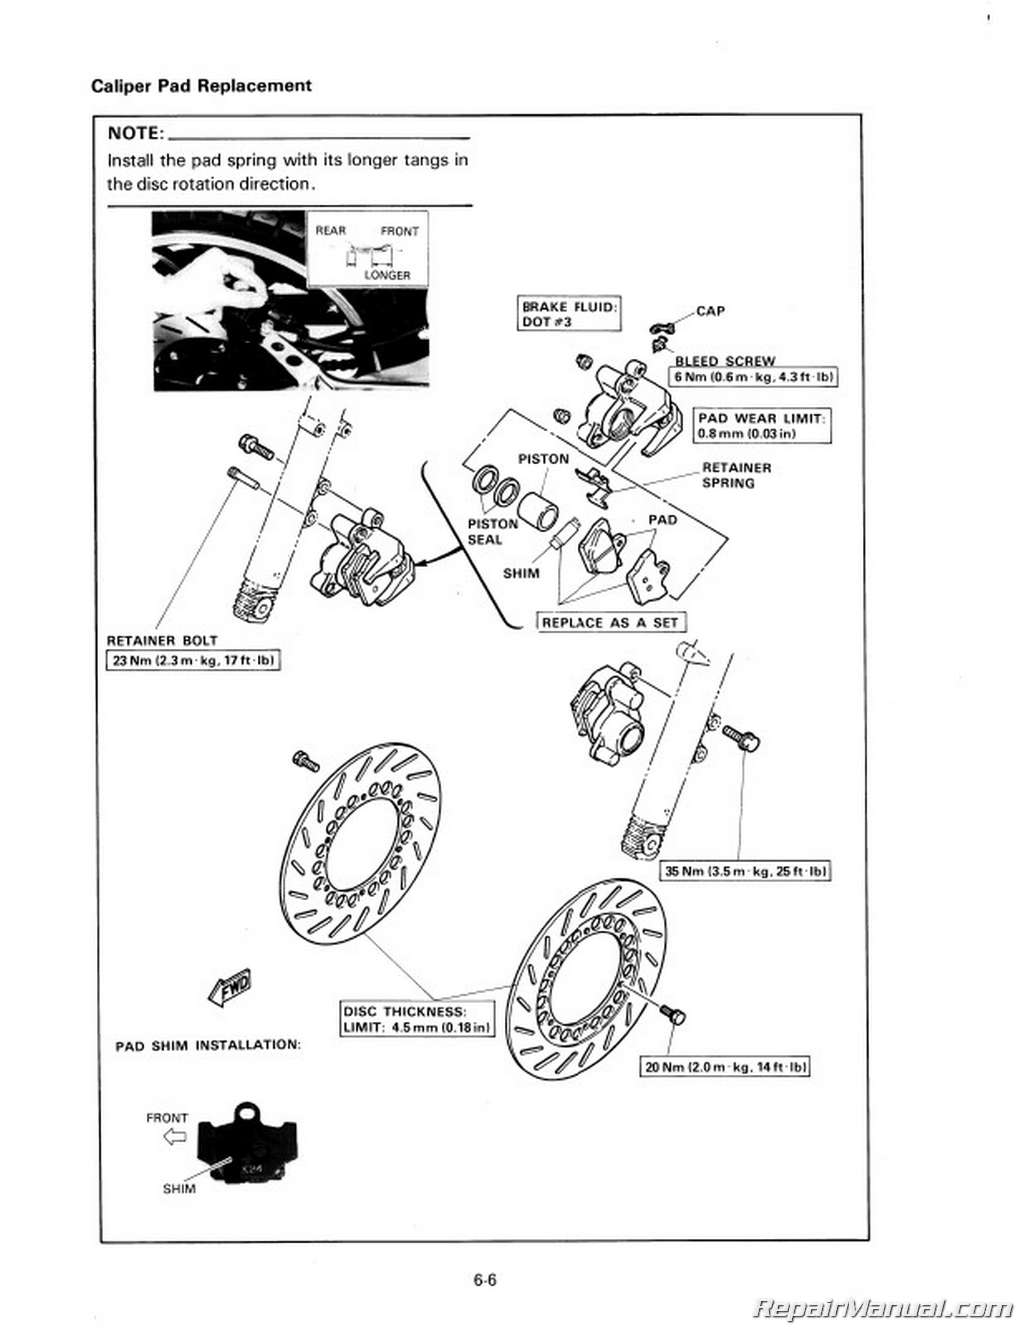 Colr Wiring Diagram Rz350